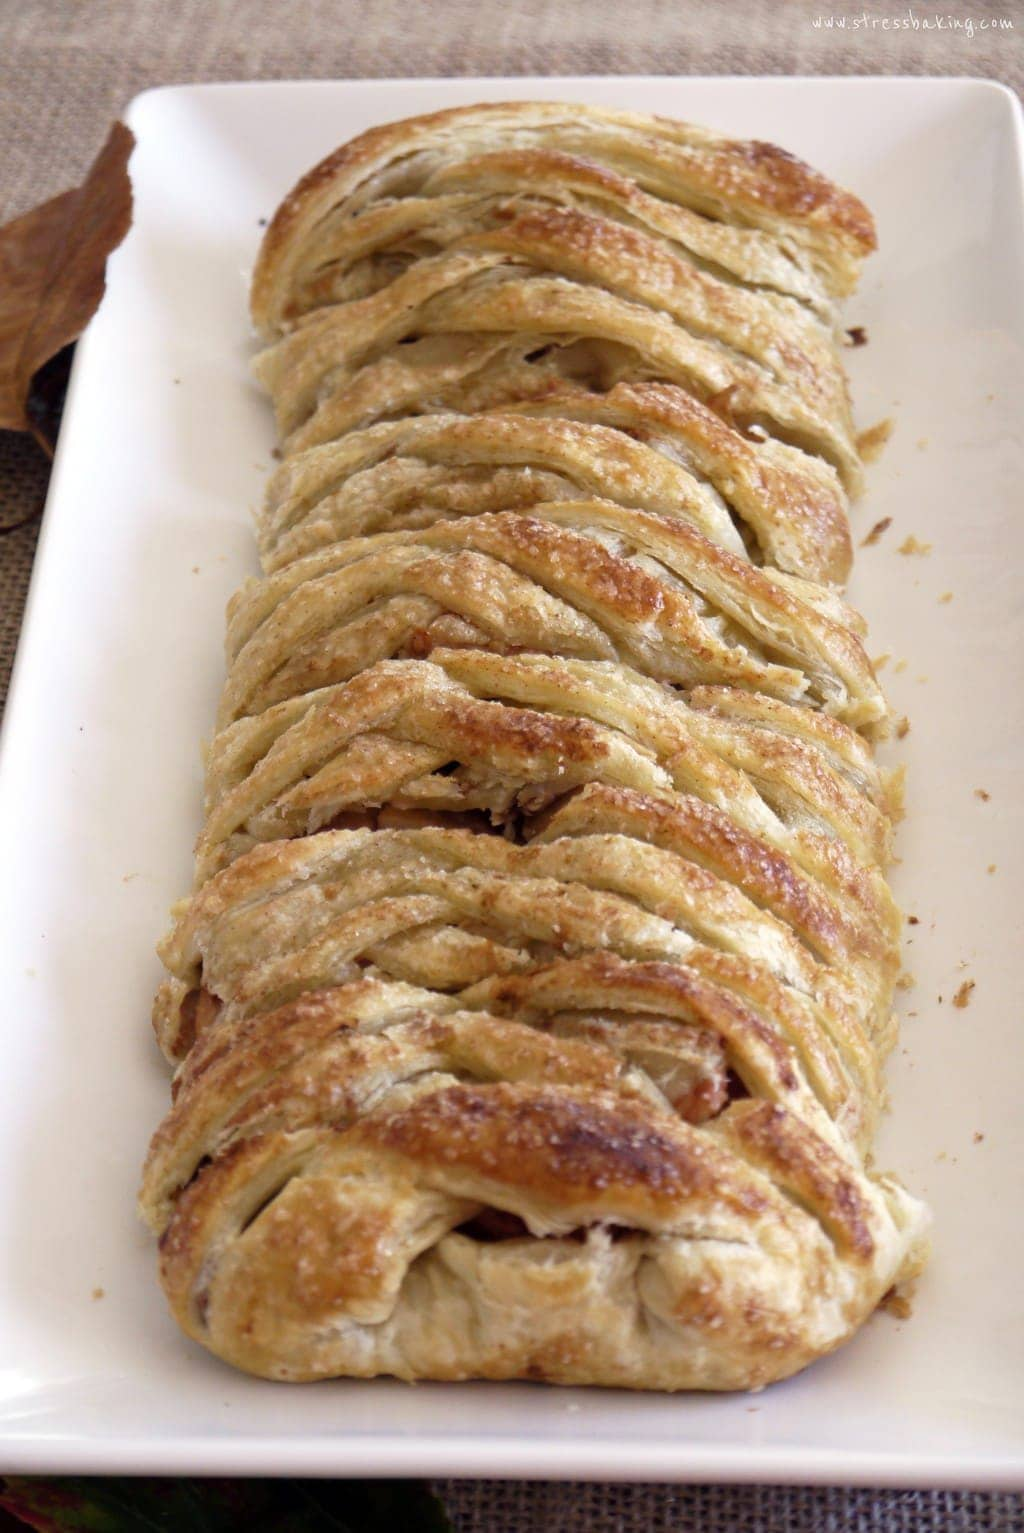 Apple Strudel: Traditional Viennese strudel made easy with frozen puff pastry! A crisp, golden crust filled with sweet cinnamon sugar and tart apples. | stressbaking.com @stressbaking #stressbaking #applestrudel #strudel #pastry #apple #easyrecipe #dessert